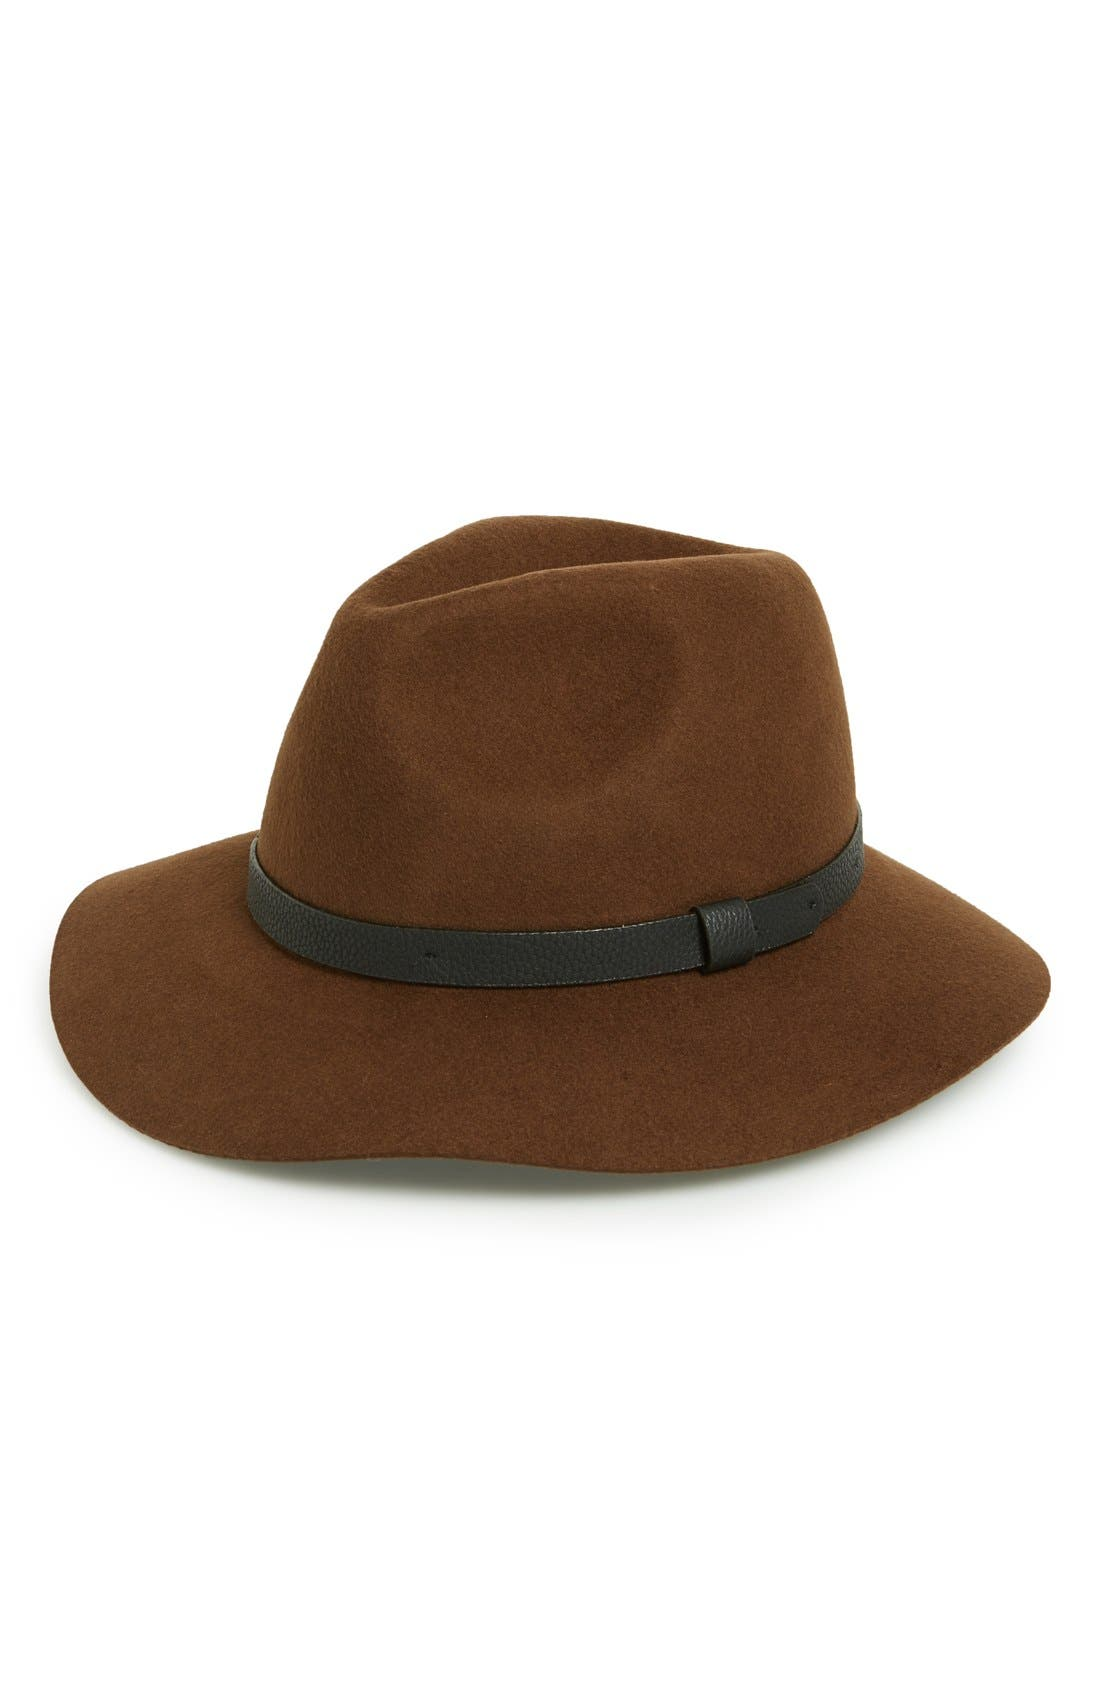 Alternate Image 1 Selected - Sole Society 'Outback' Wool Hat